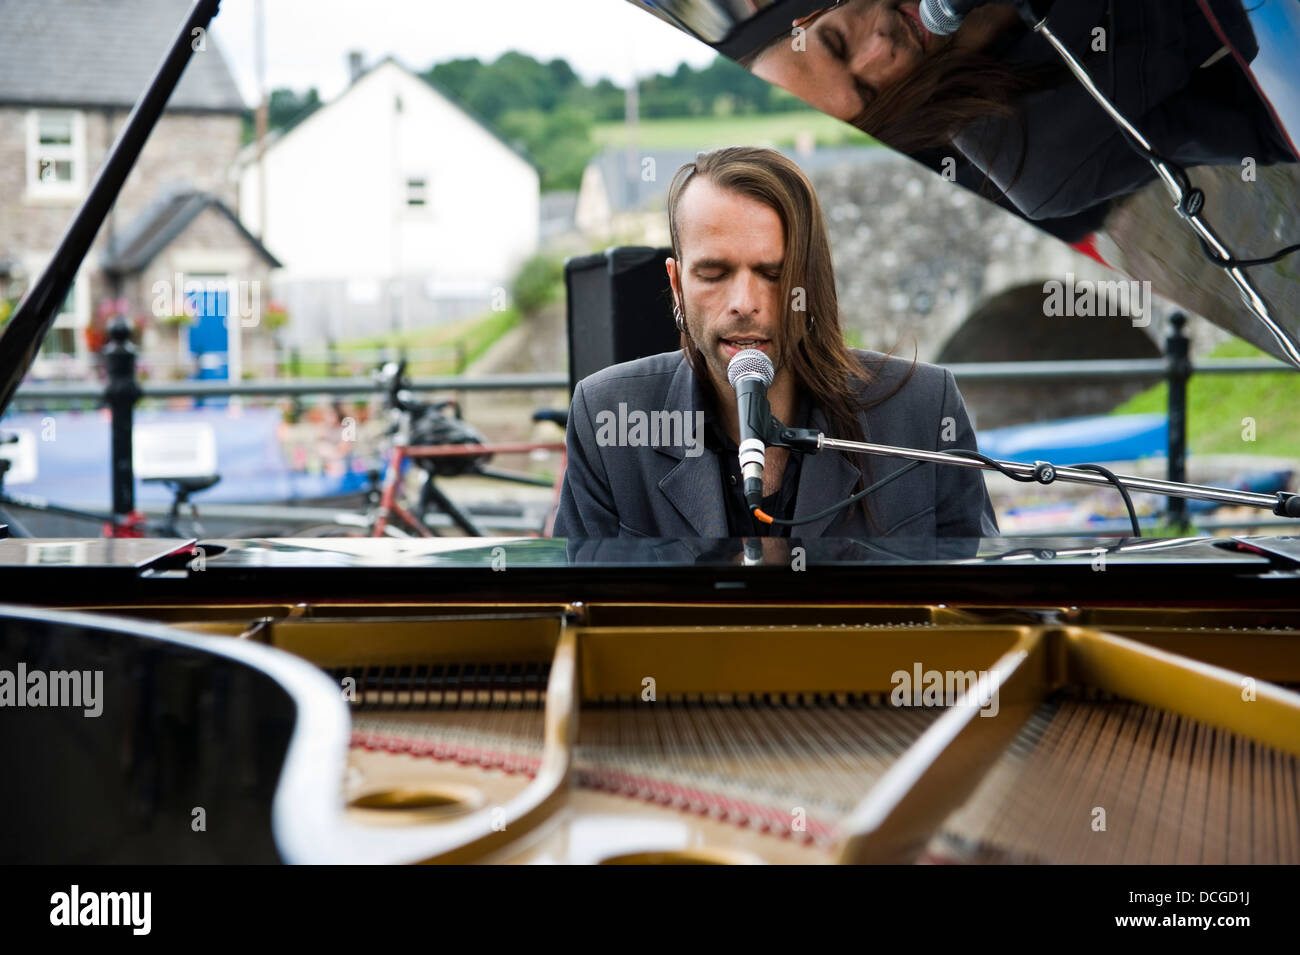 Pianist Ten Sheds playing piano entertaining crowds outside canalside during Brecon Jazz Festival - Stock Image